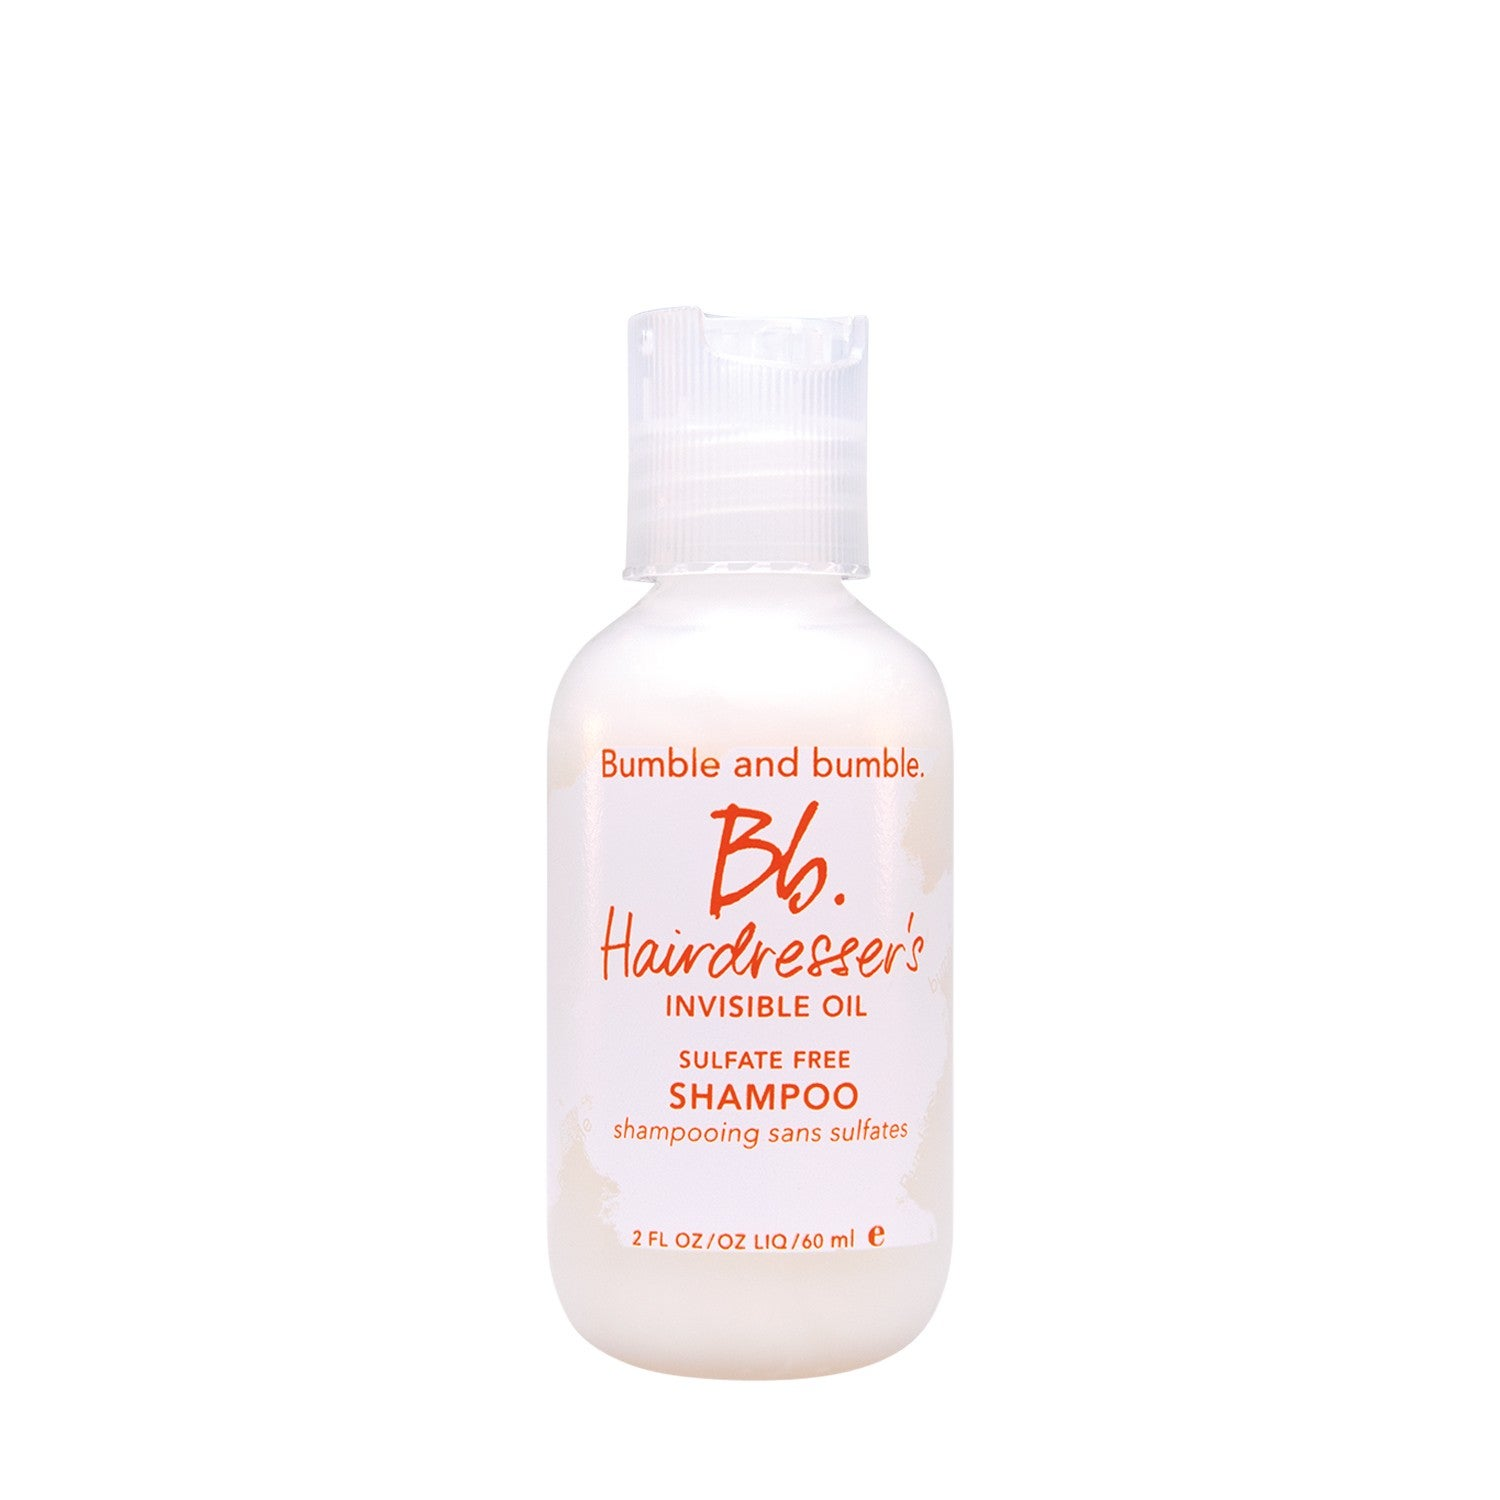 Bumble and bumble hairdresser 39 s invisible oil sulfate free shampoo travel size - Bumble and bumble salon locator ...